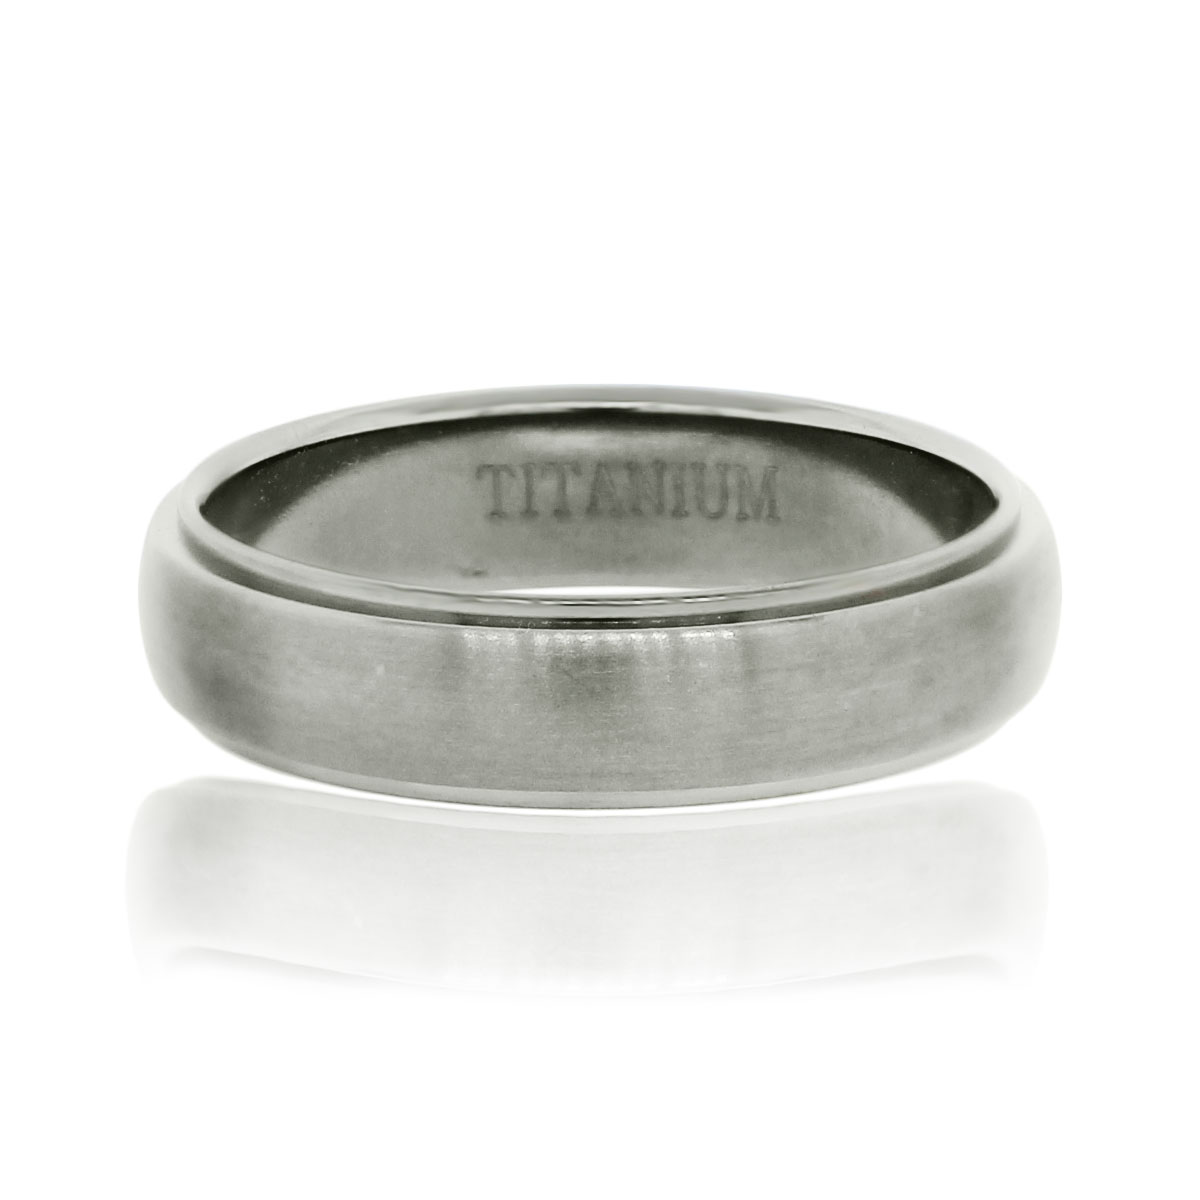 You are viewing this Titanium 5.5mm Gents Wedding Band Ring!